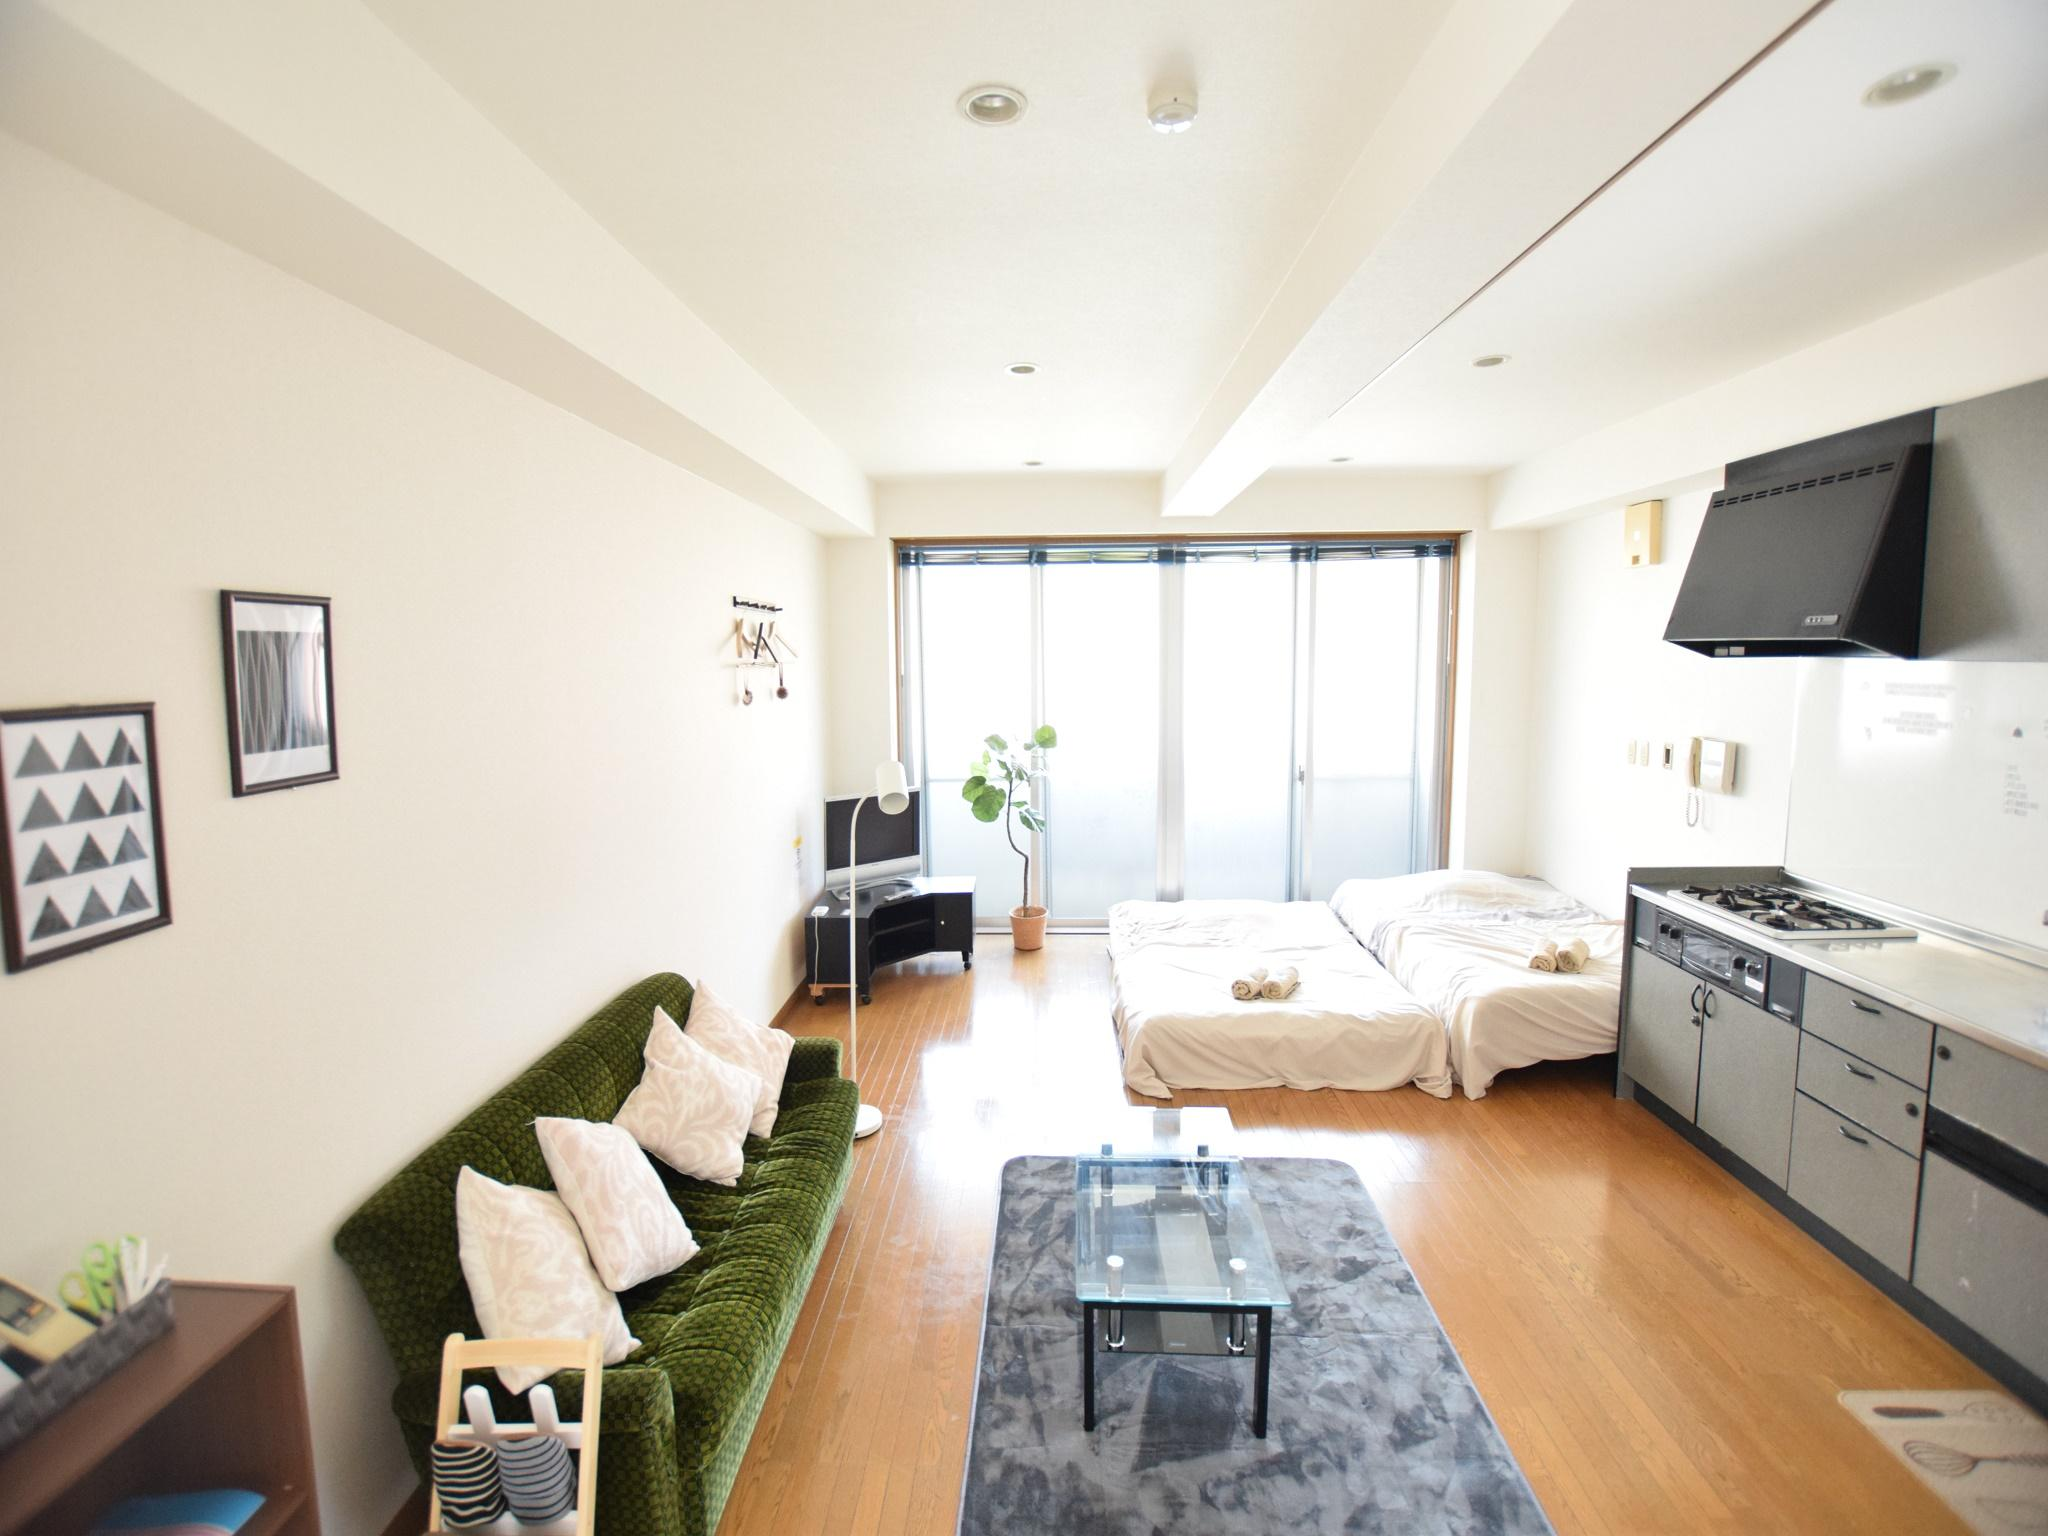 Abo Living At Home Best Price On Abo 2 Bedroom Apt Near Osaka Seaside C In Osaka Reviews